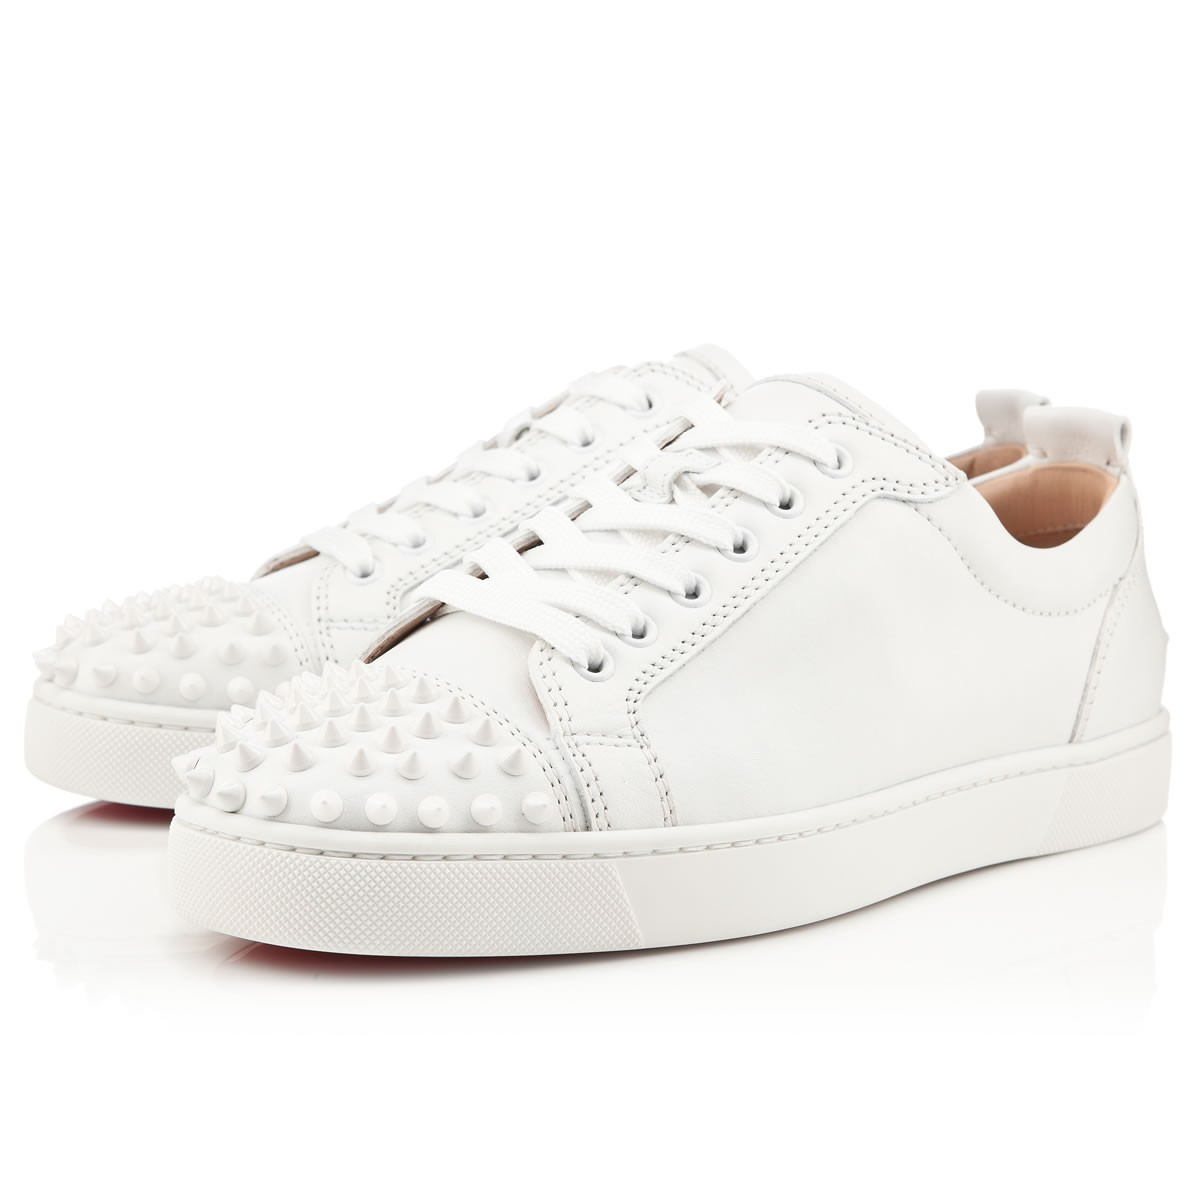 outlet store 8b4d6 38e68 Louis Junior Spikes White/White Leather - Men Shoes - Christian Louboutin